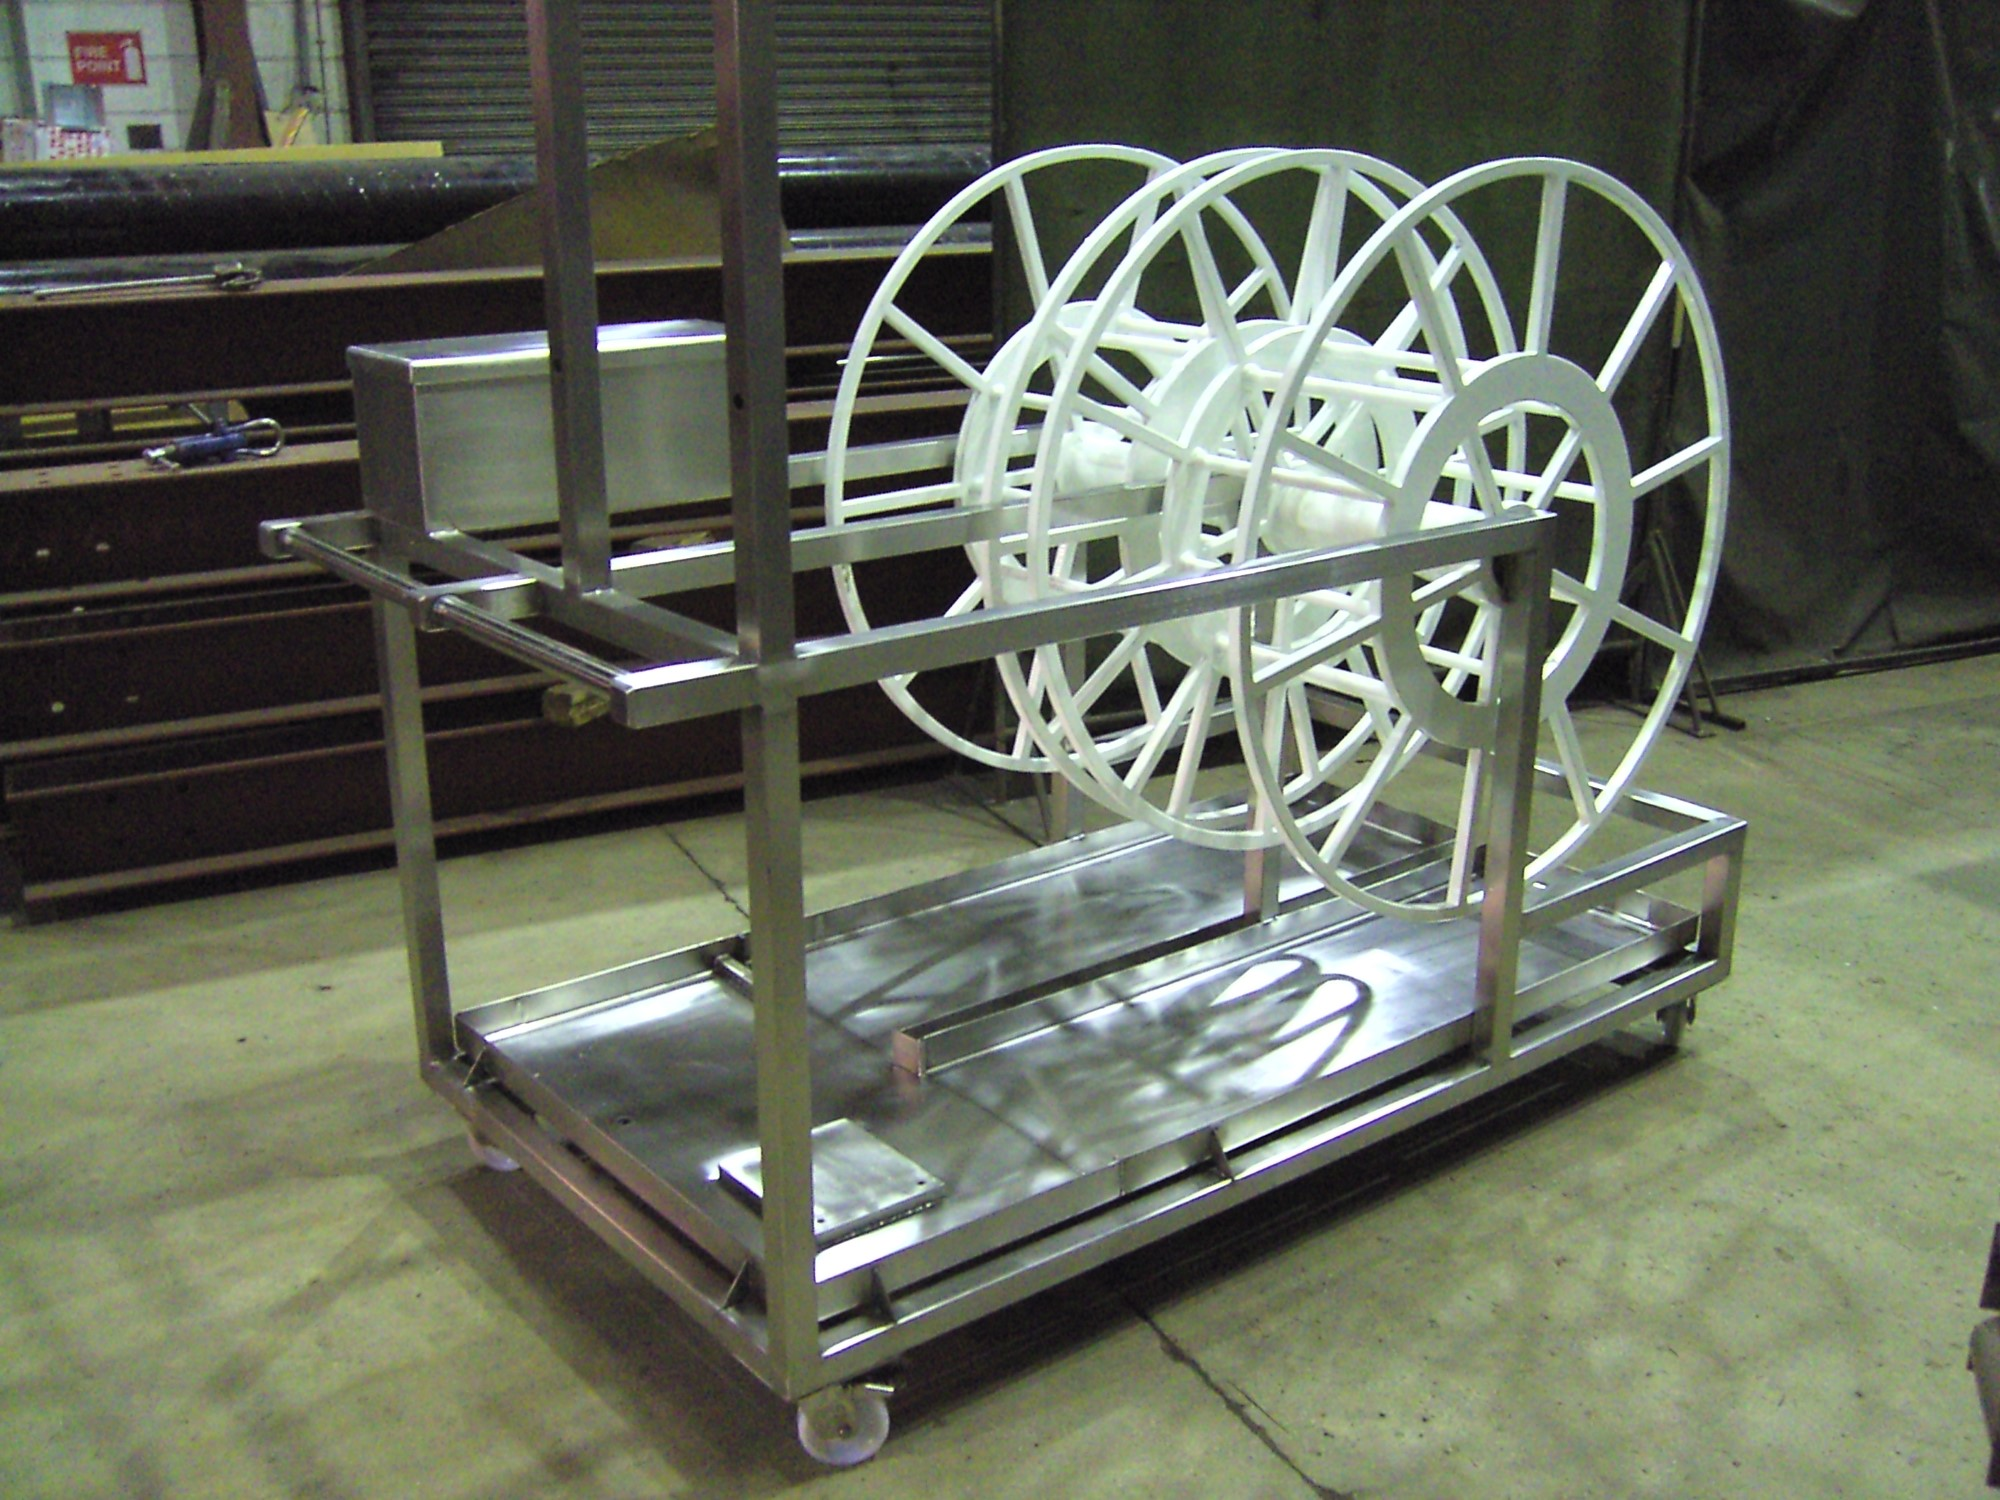 steel hose trolley fabricated by bradfabs in bradford, fully portable custom made steel hose trolley